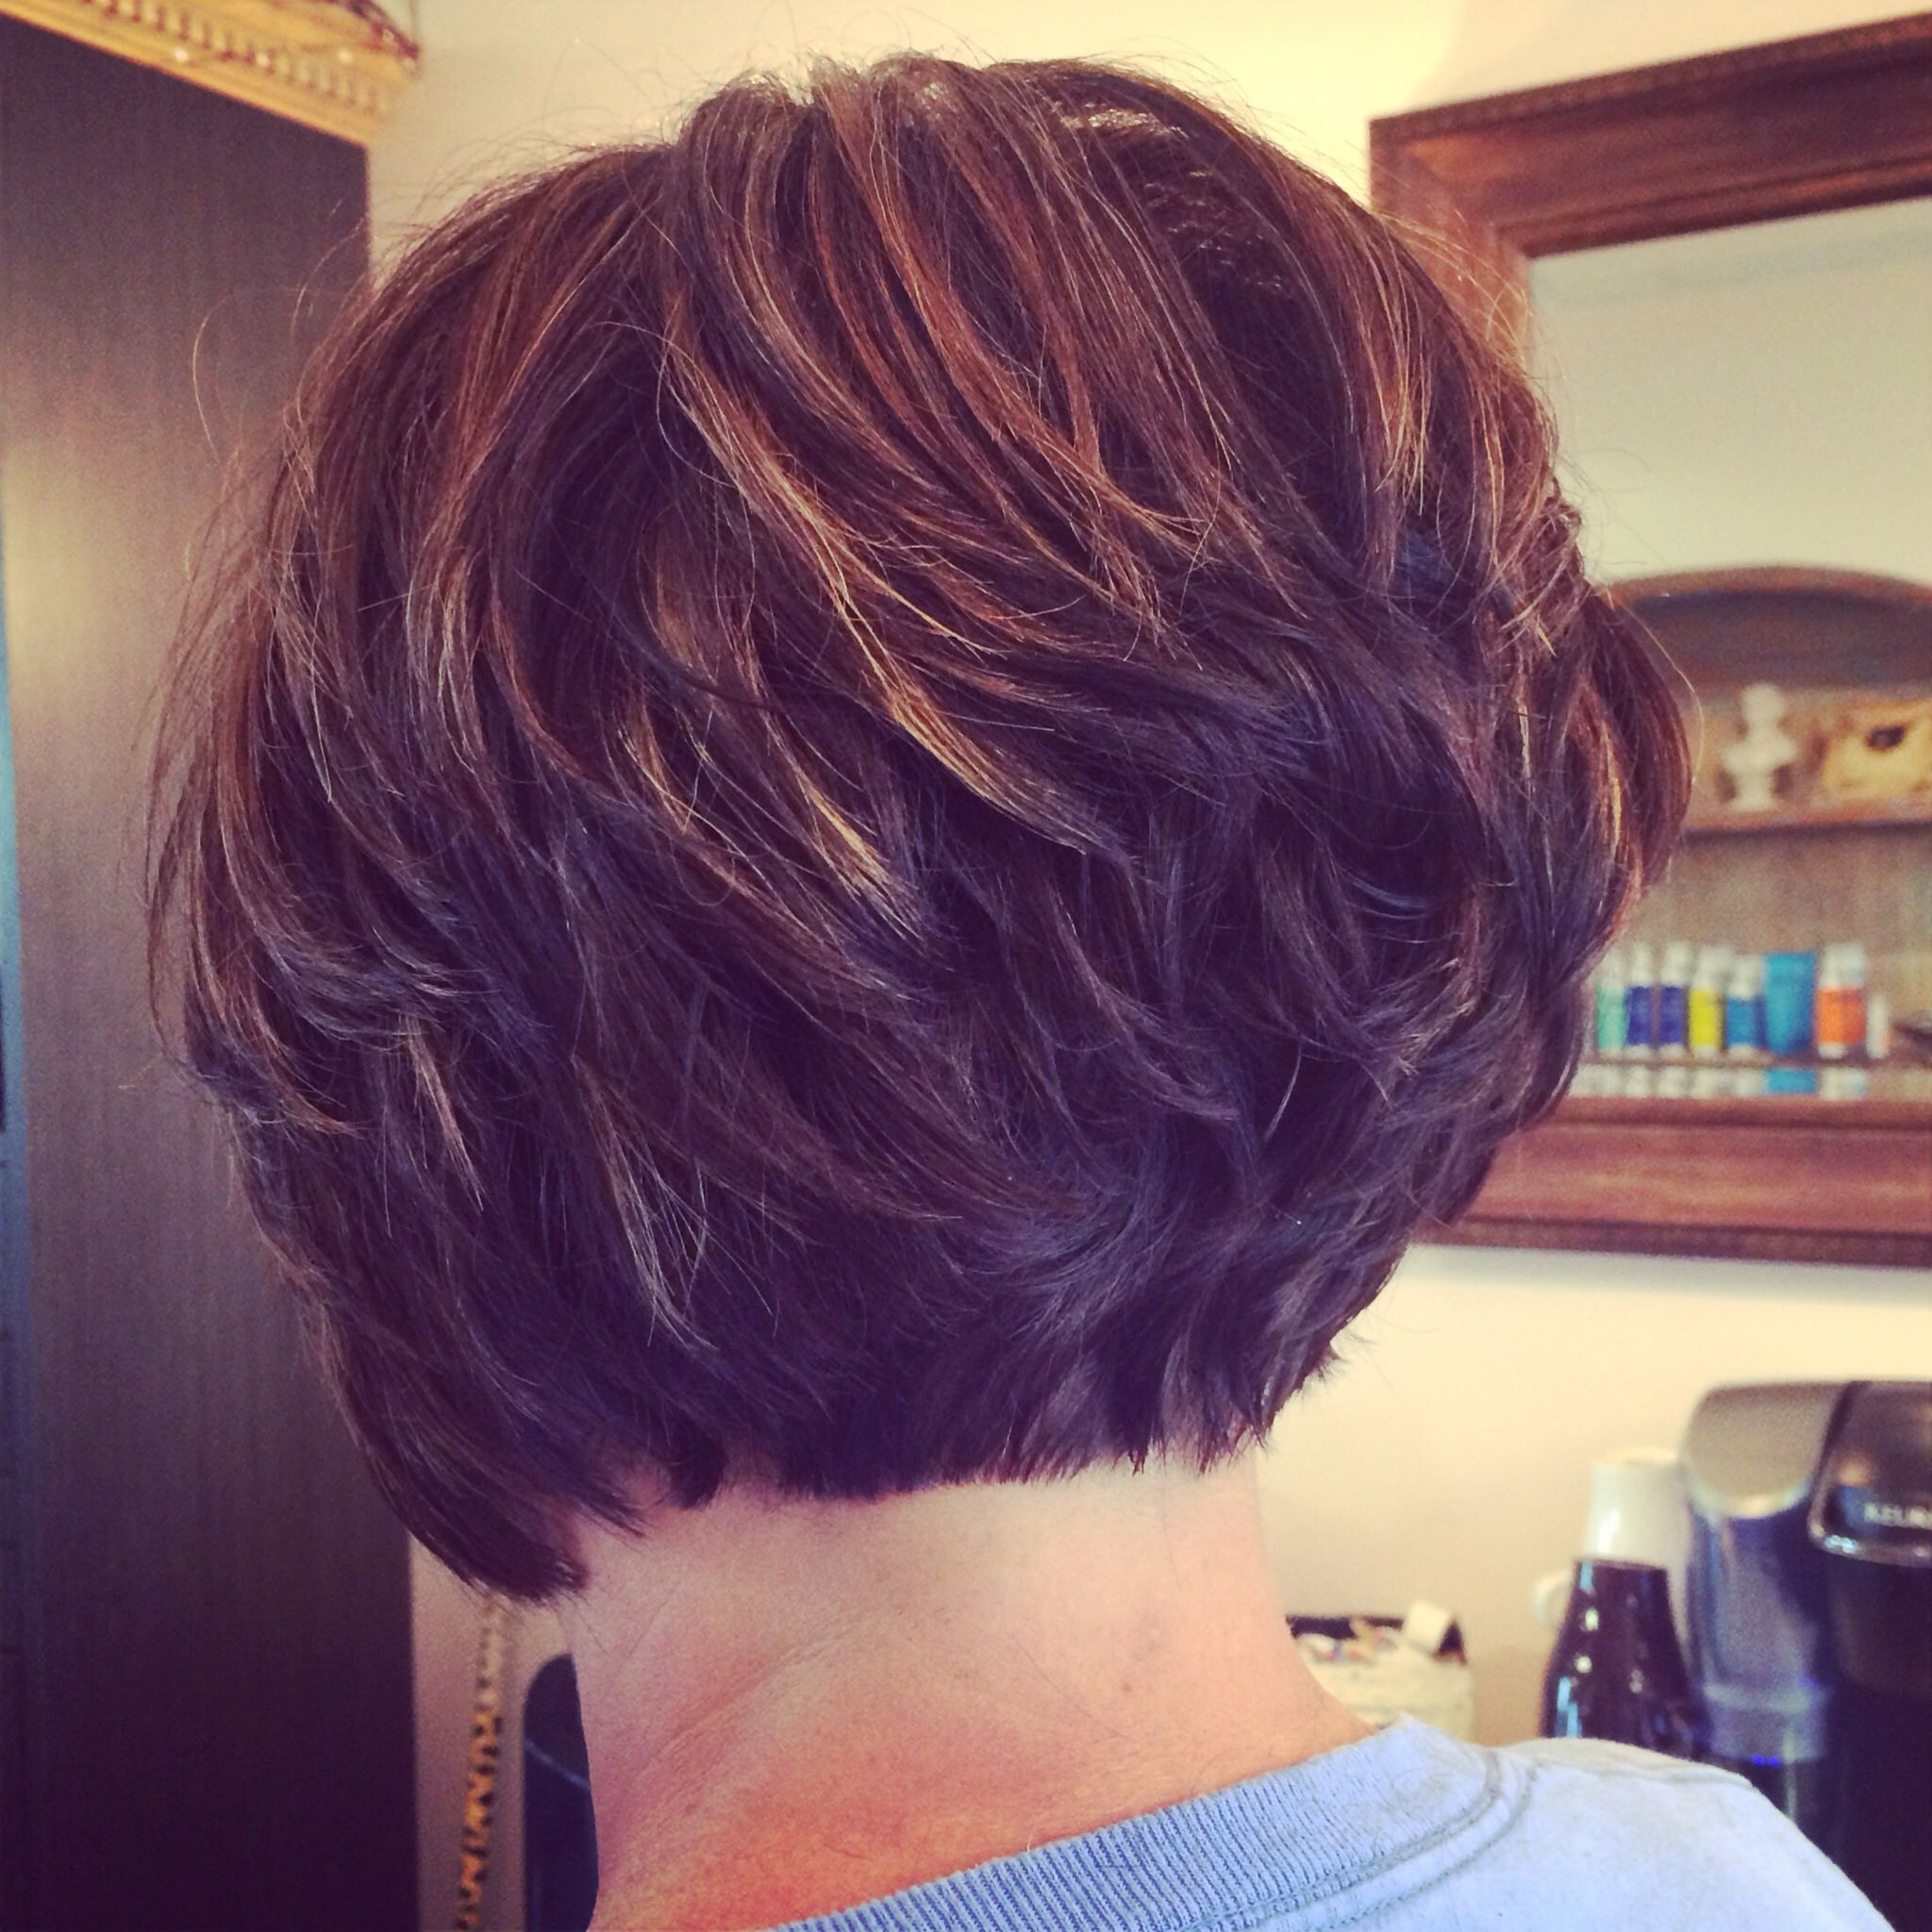 So into short hair right now razored bob with lots of texture and